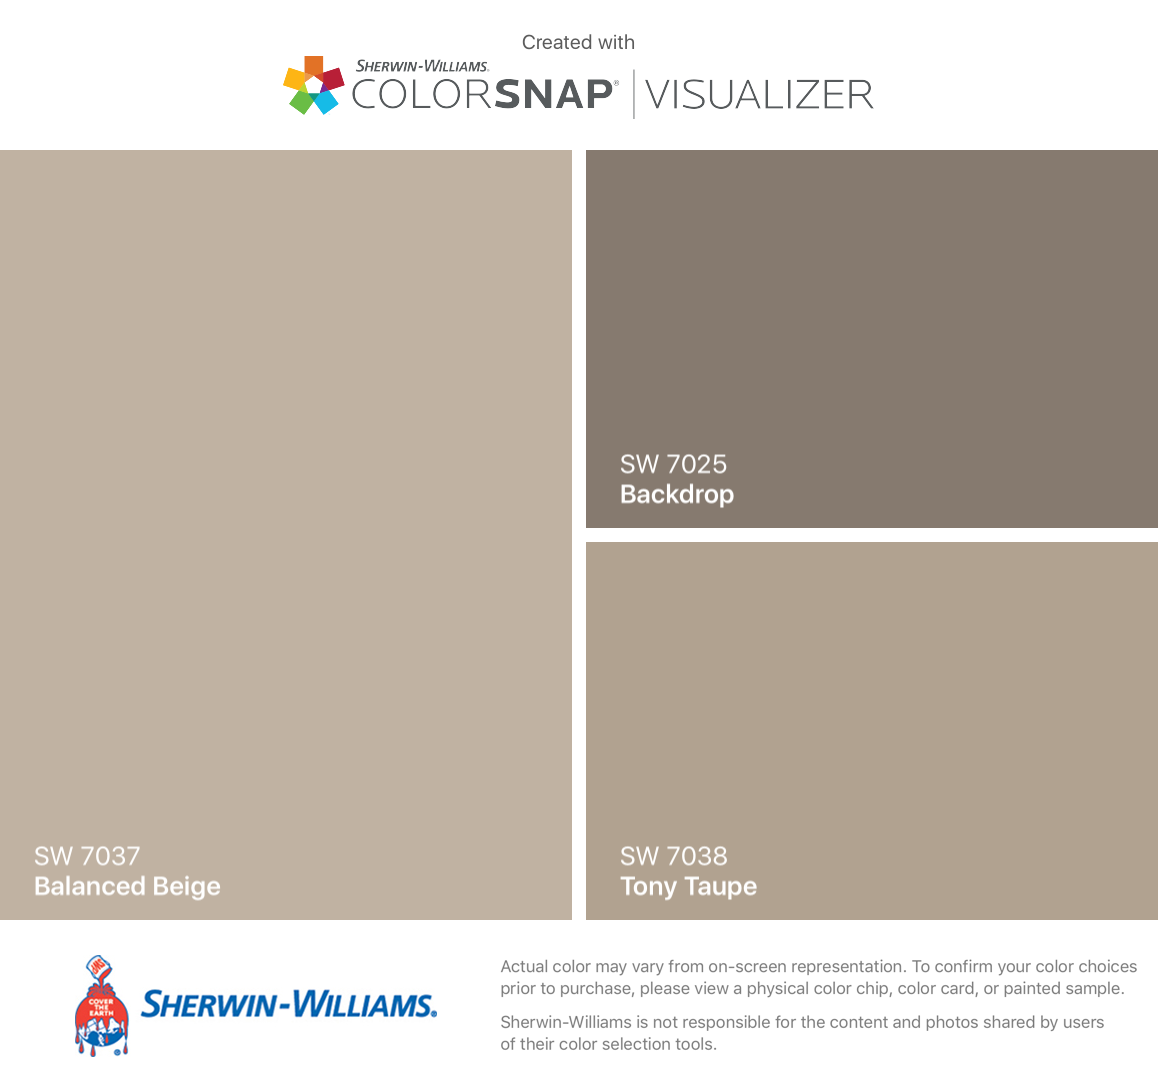 I Found These Colors With Colorsnap Visualizer For Iphone By Sherwin Williams Balanced Beige